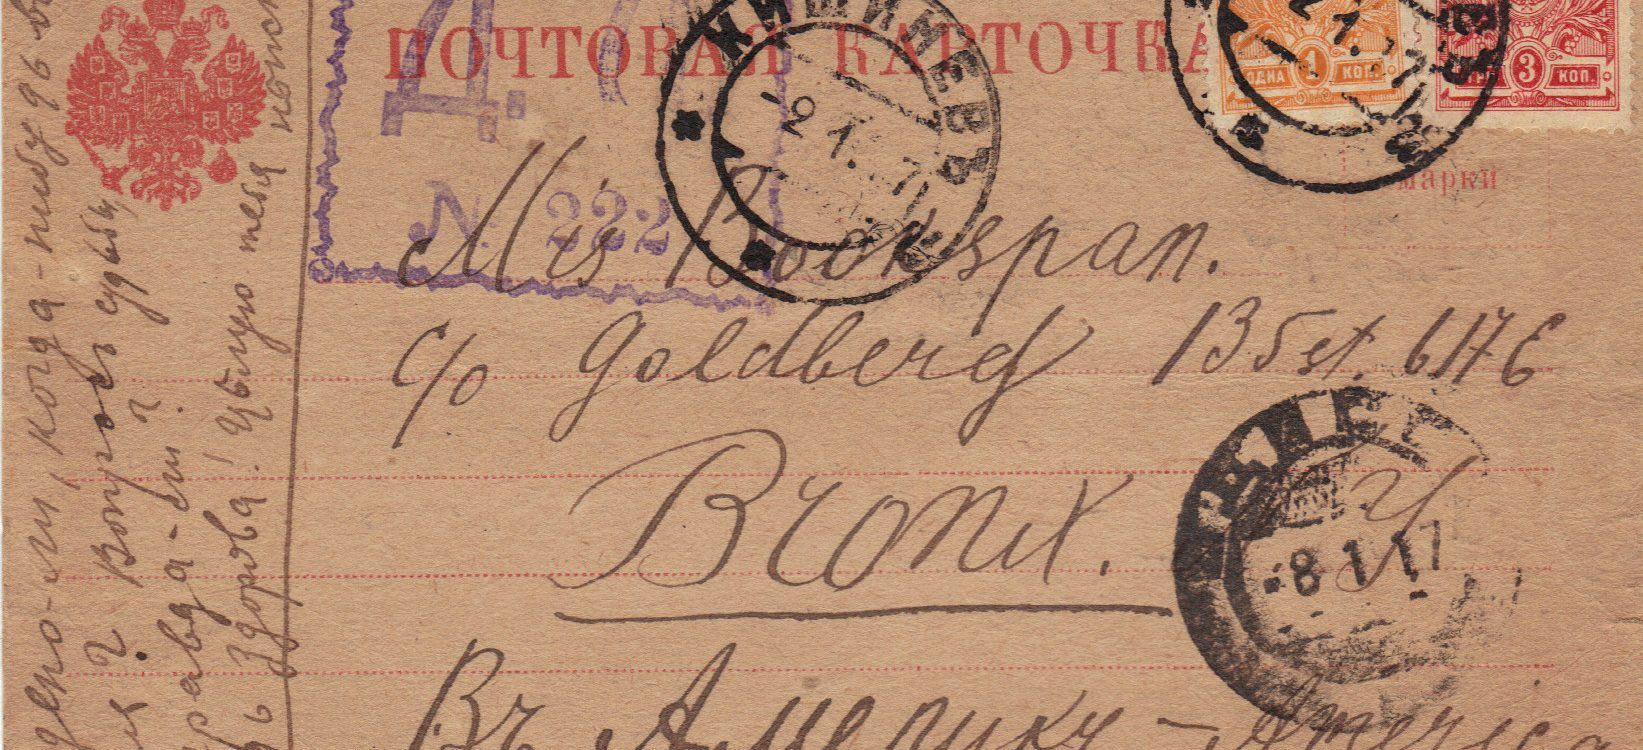 Postcard to Mrs. Bookspan from Tsillie January 2, 1917 A